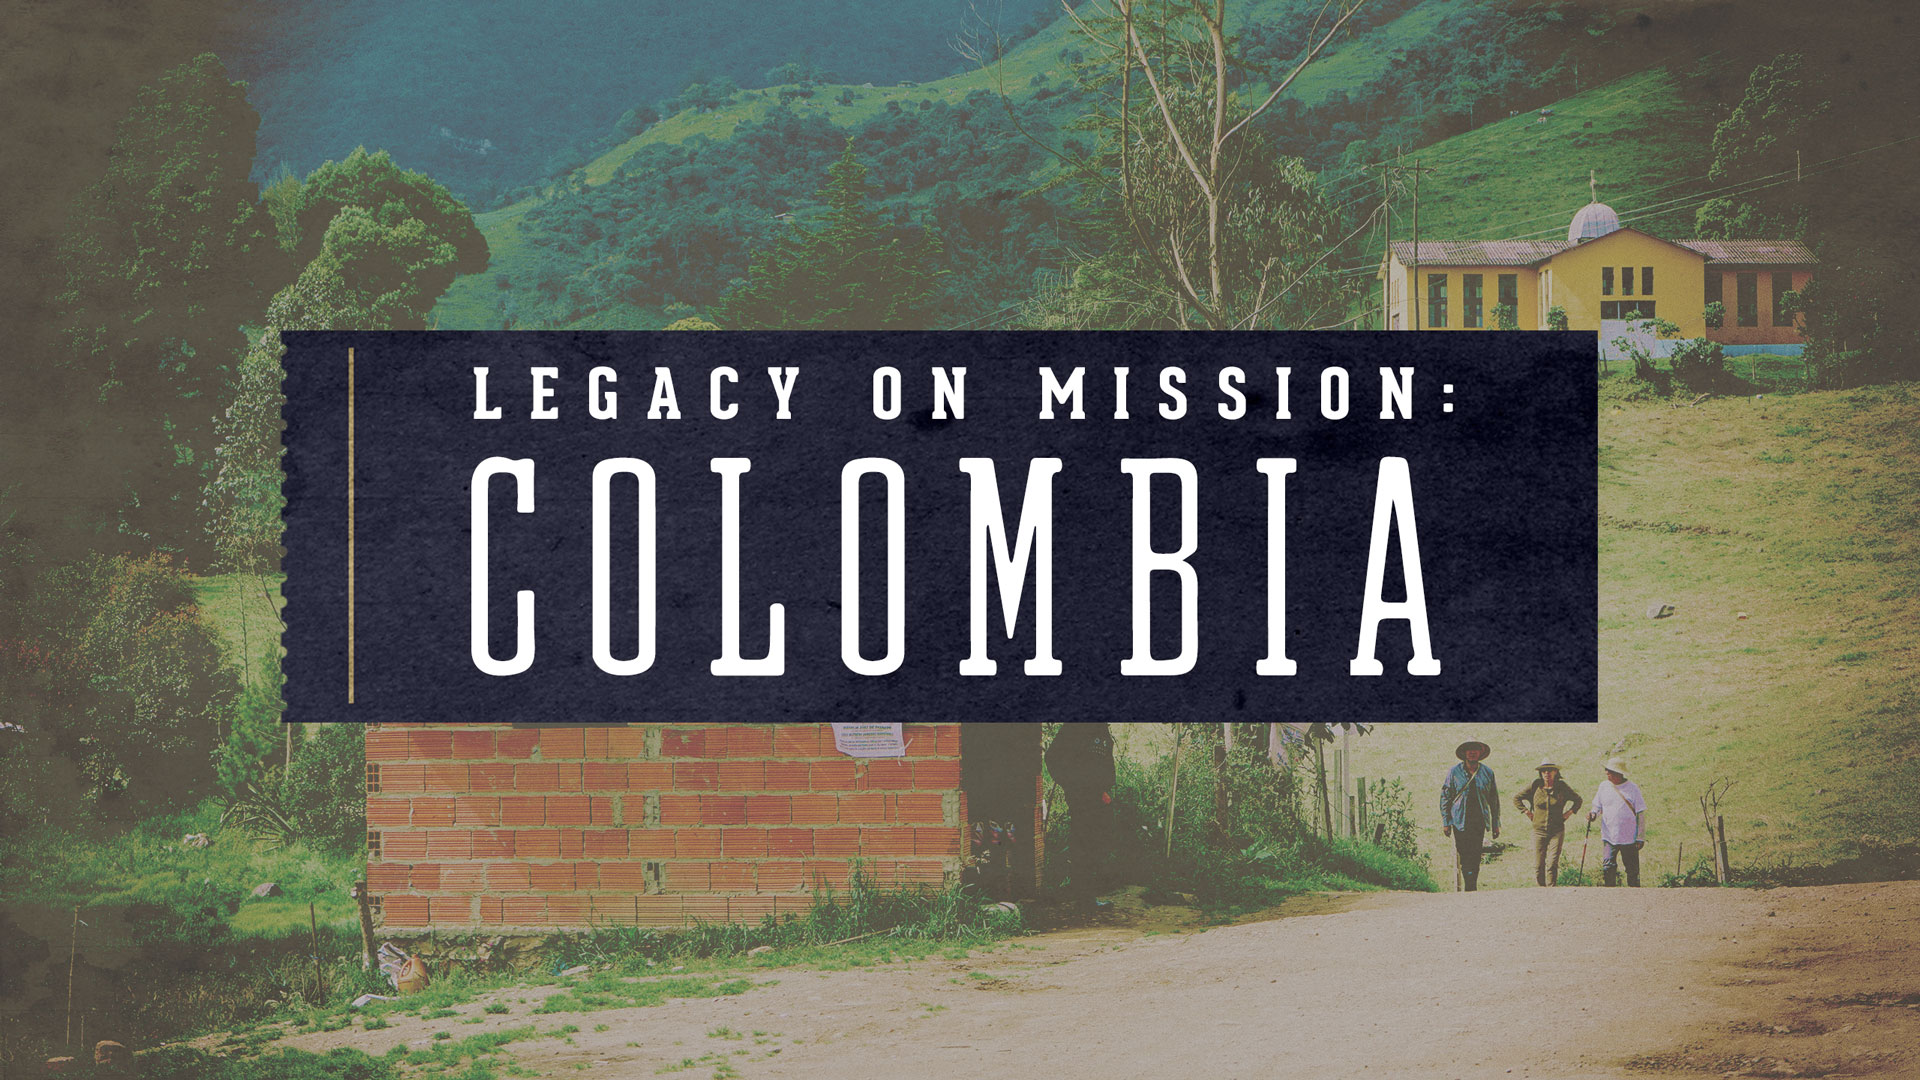 Colombia-Mission.jpg